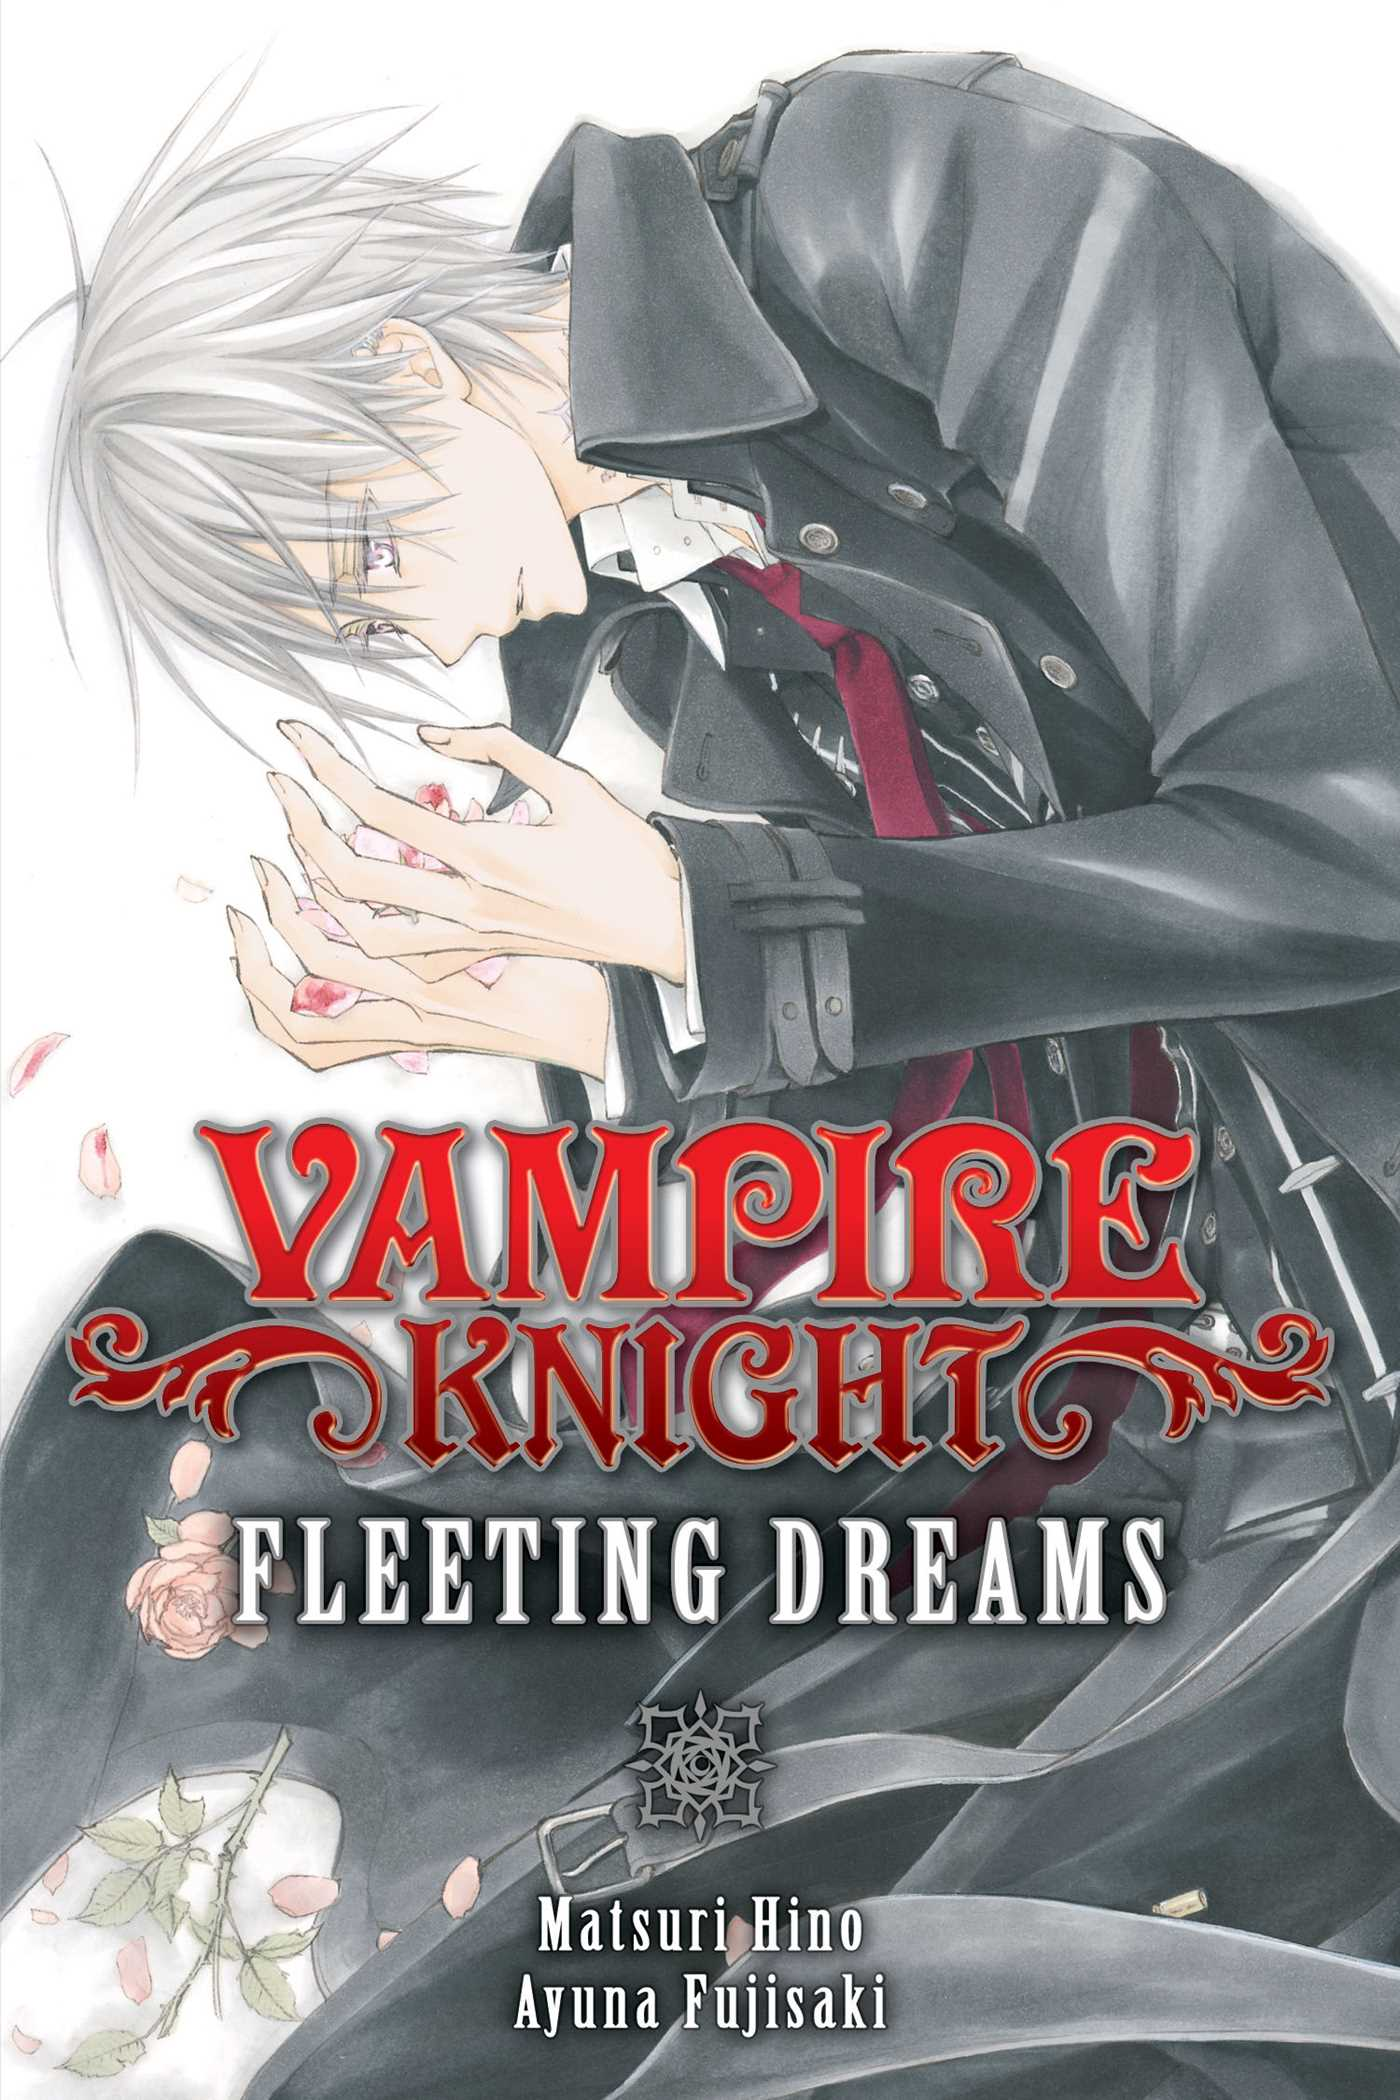 Vampire-knight-fleeting-dreams-9781421577289_hr